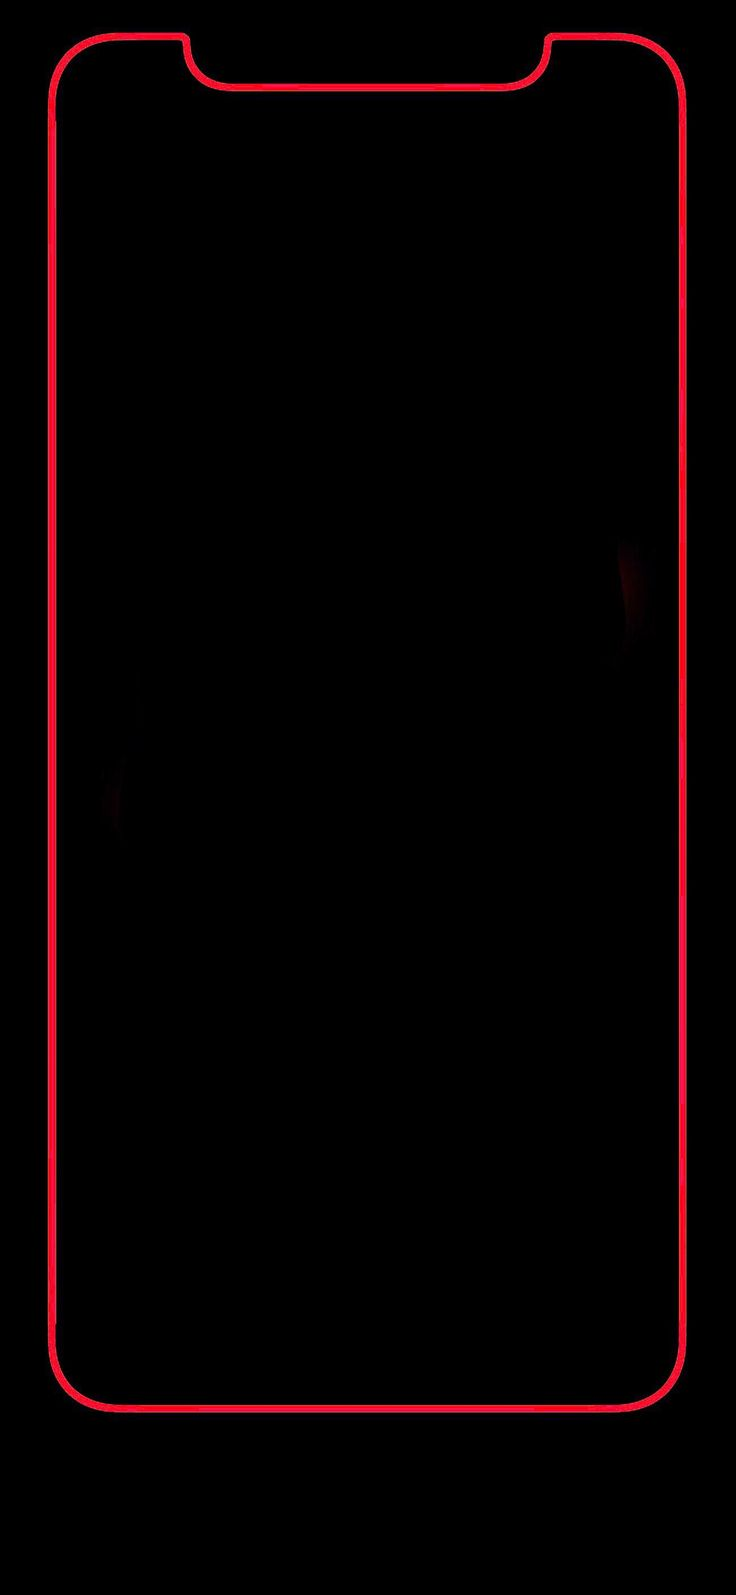 iPhone X red bold border looks great :)